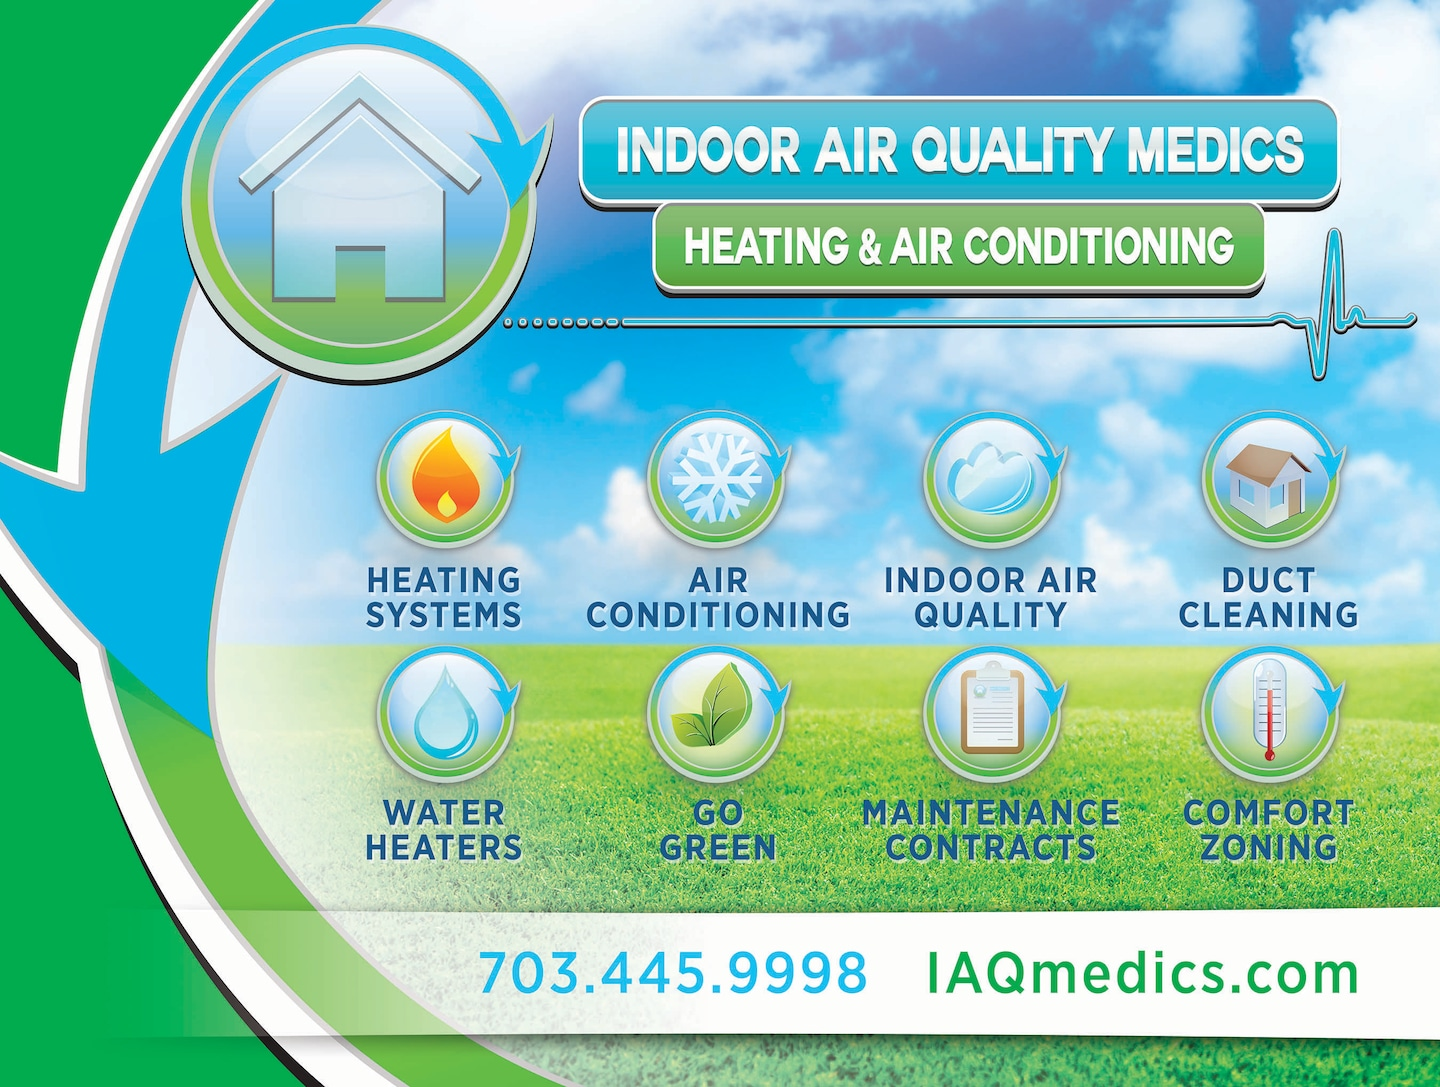 Indoor Air Quality Medics